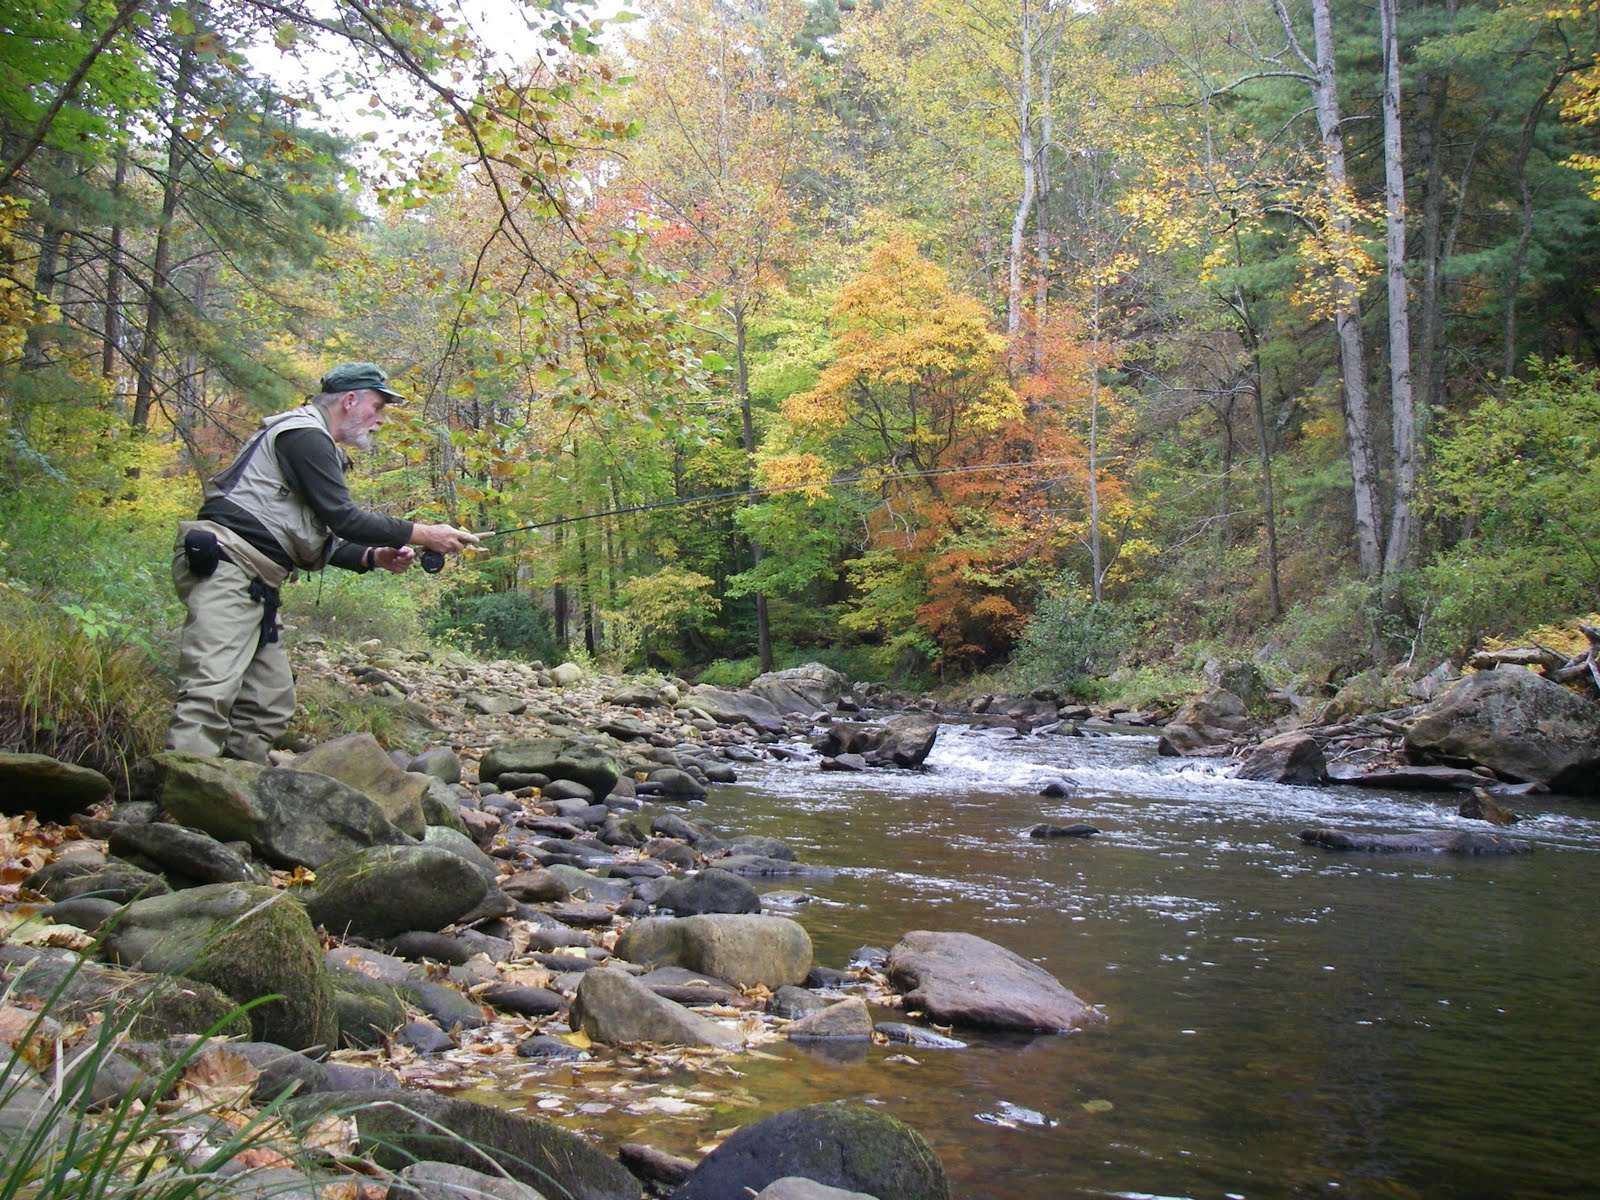 hugh koontz his laughing trout fly fishing amid fall 39 s